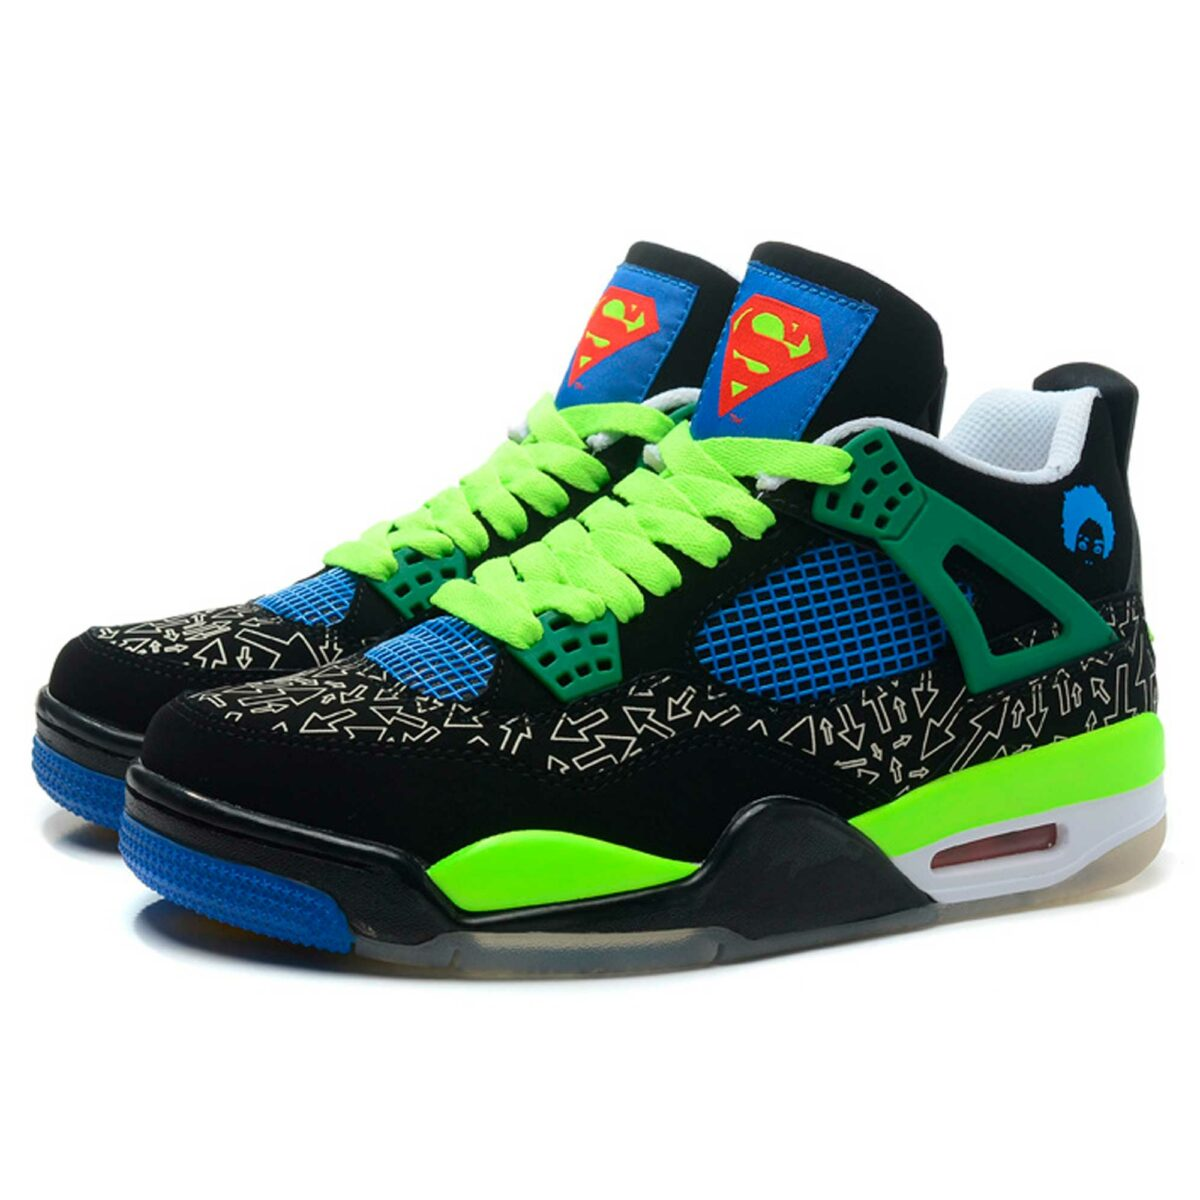 nike air jordan 4 retro doernbecher 308497-015 купить